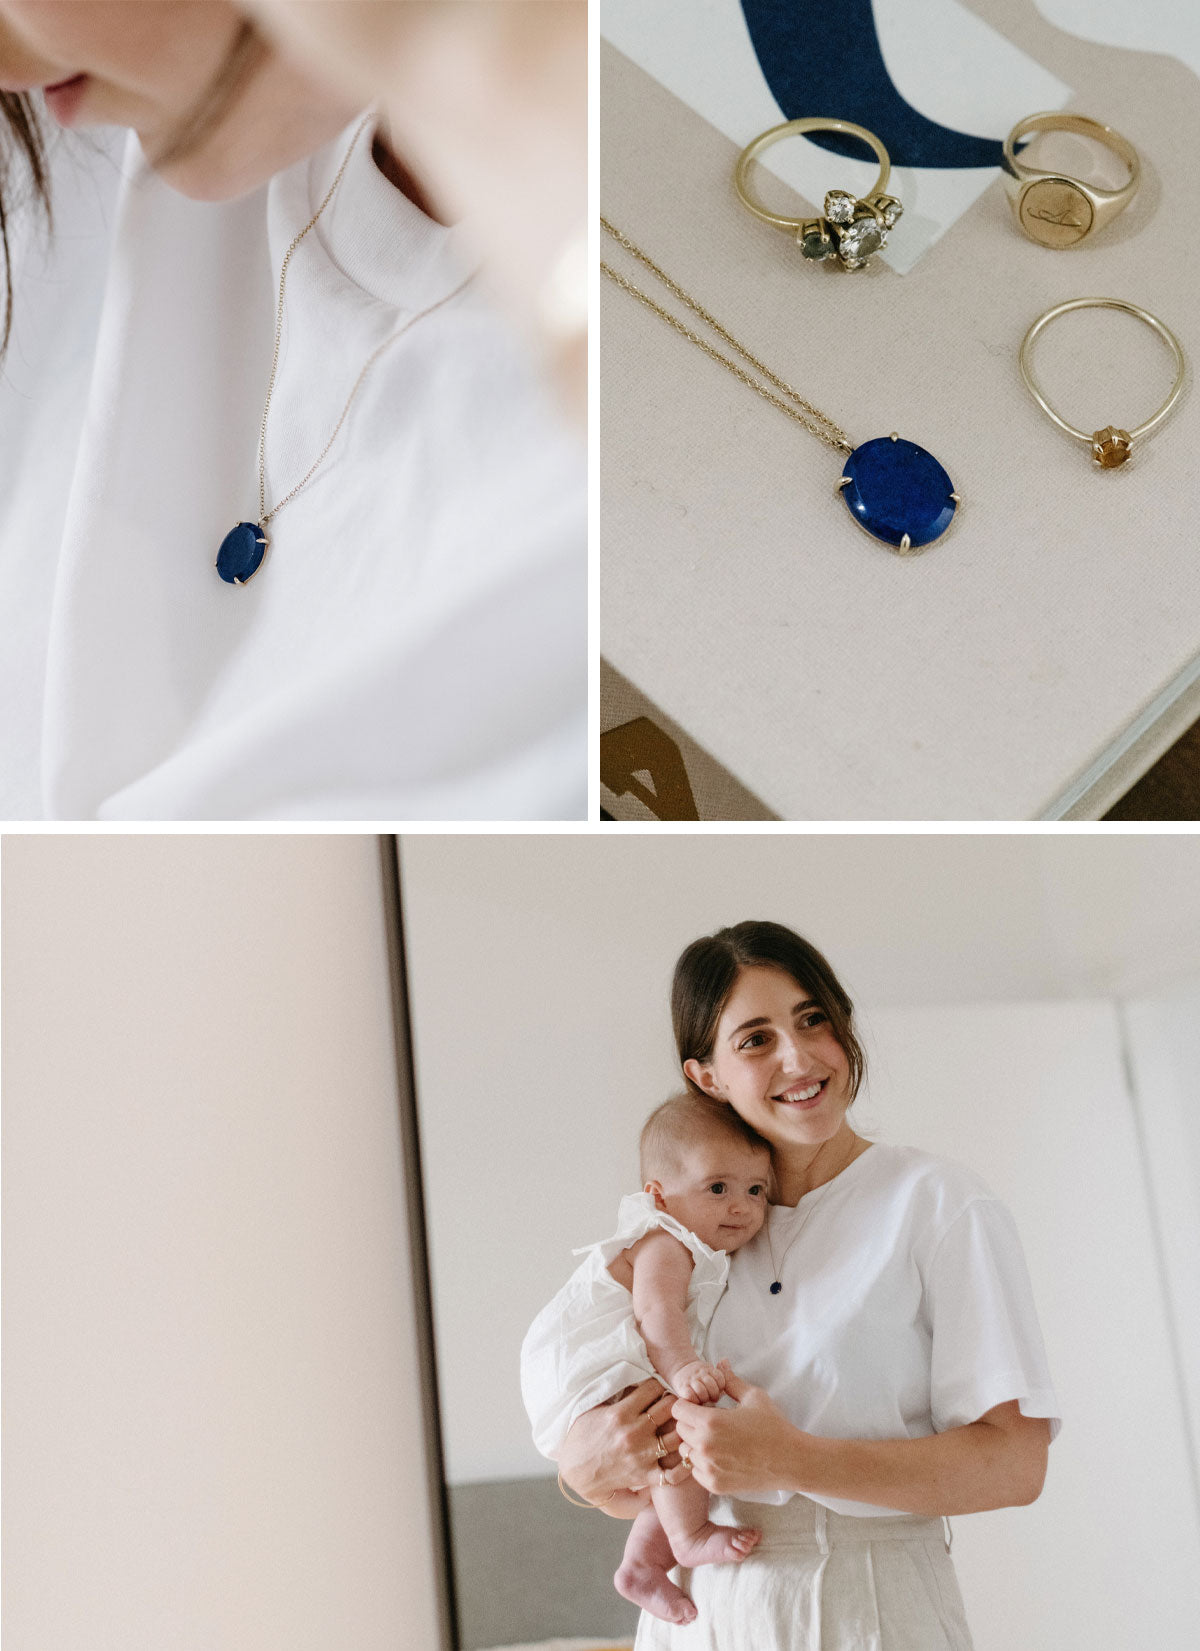 Amanda Bardas wearing the blue Lapis Lazuli Pendant